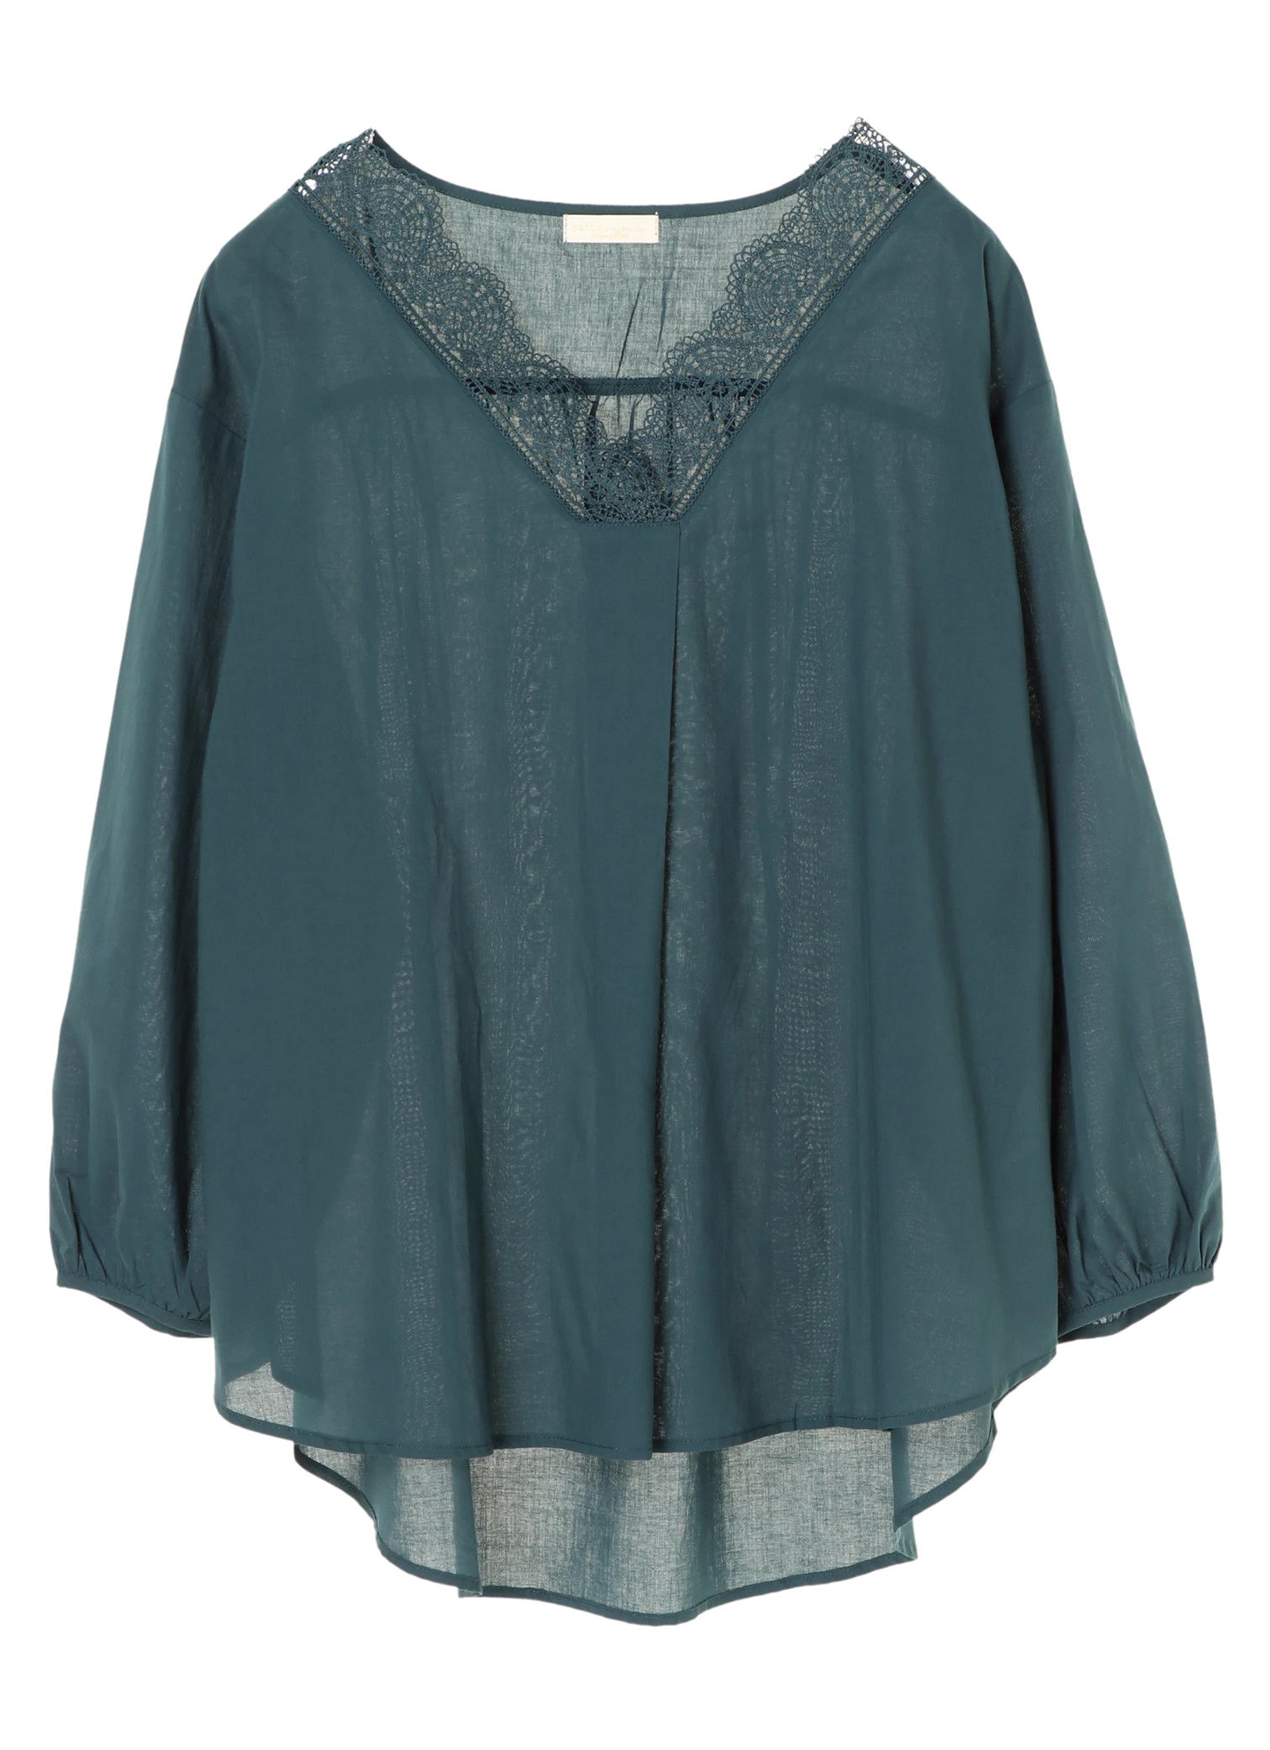 Earth, Music & Ecology Cassia Top - Dark Green